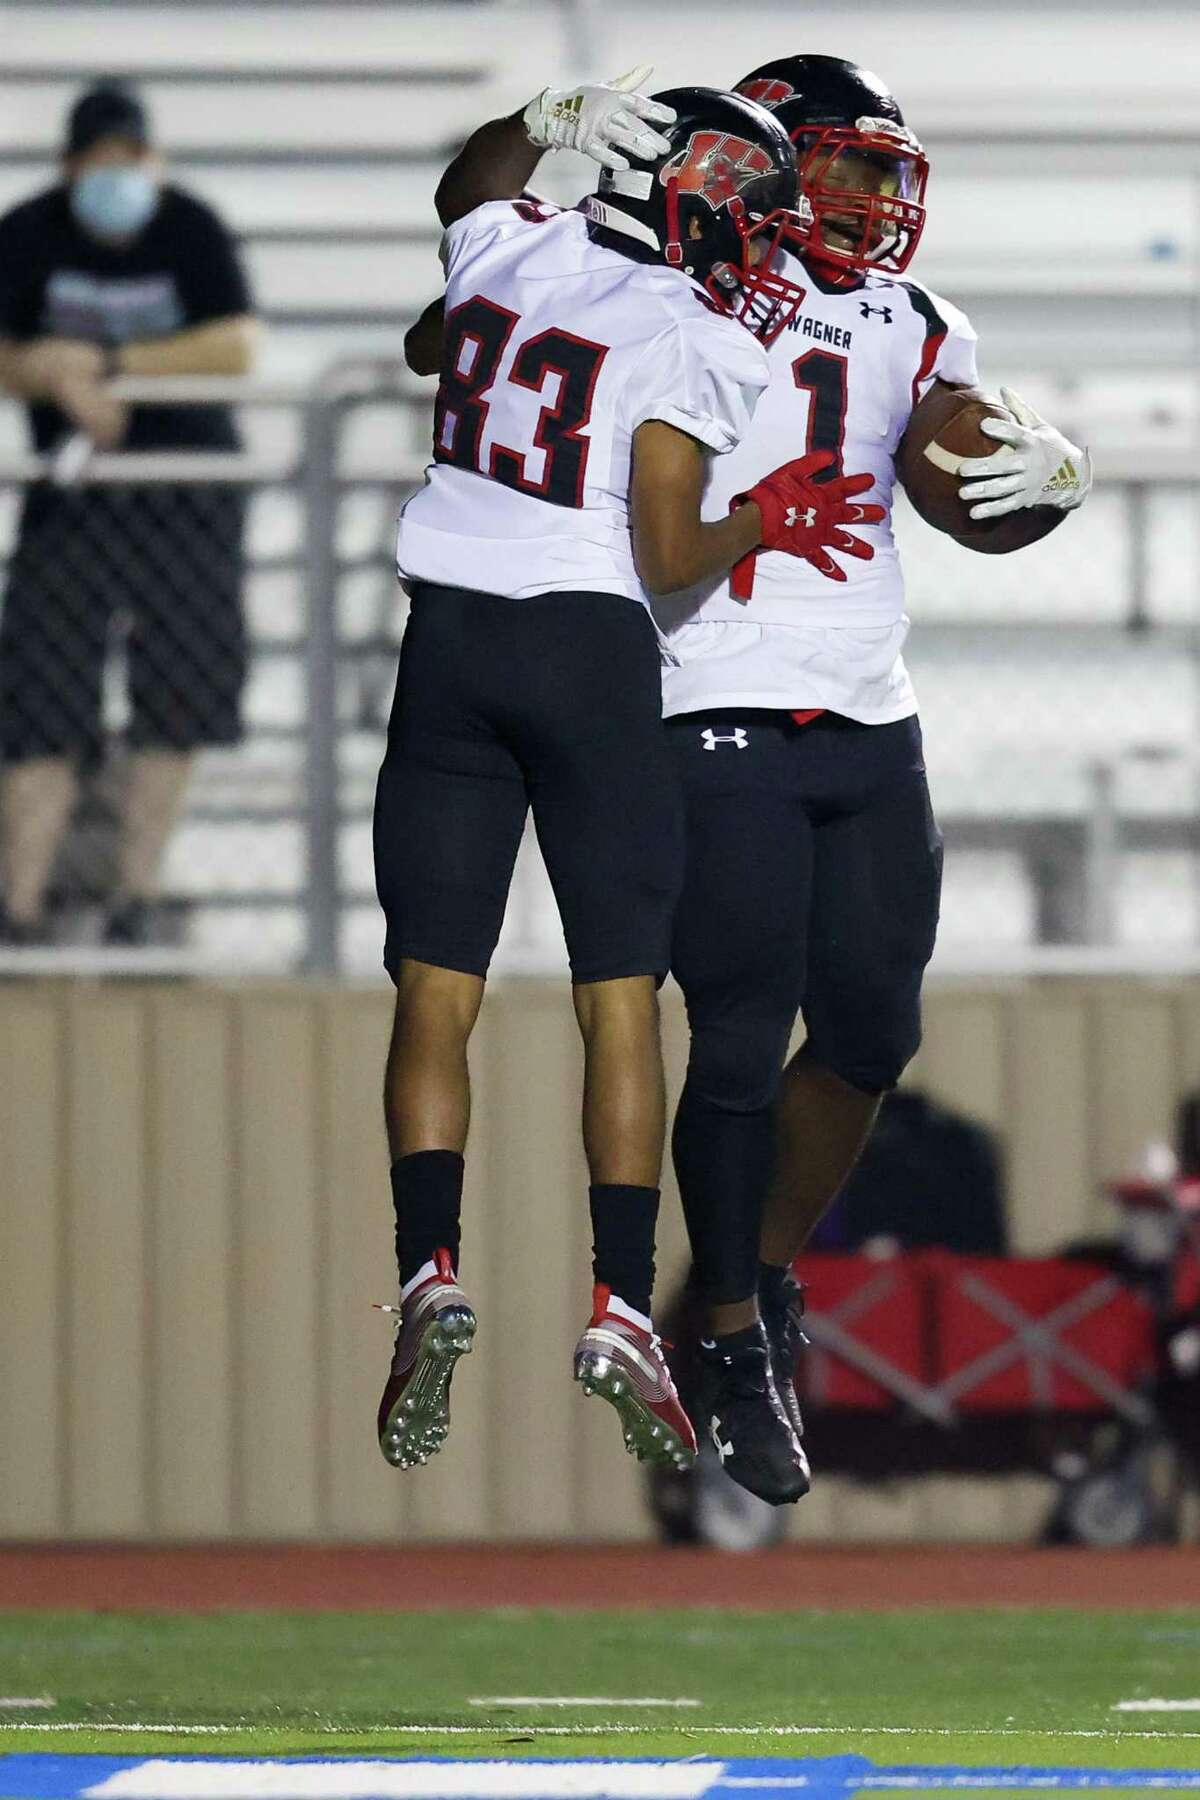 Wagner's L.J. Butler, right, celebrates a9-yard touchdown run with Donavyn Ransaw during the first half of their Class 6A, Division II first round high school football playoff with Johnson at Comalander Stadium on Friday, Dec. 11, 2020.